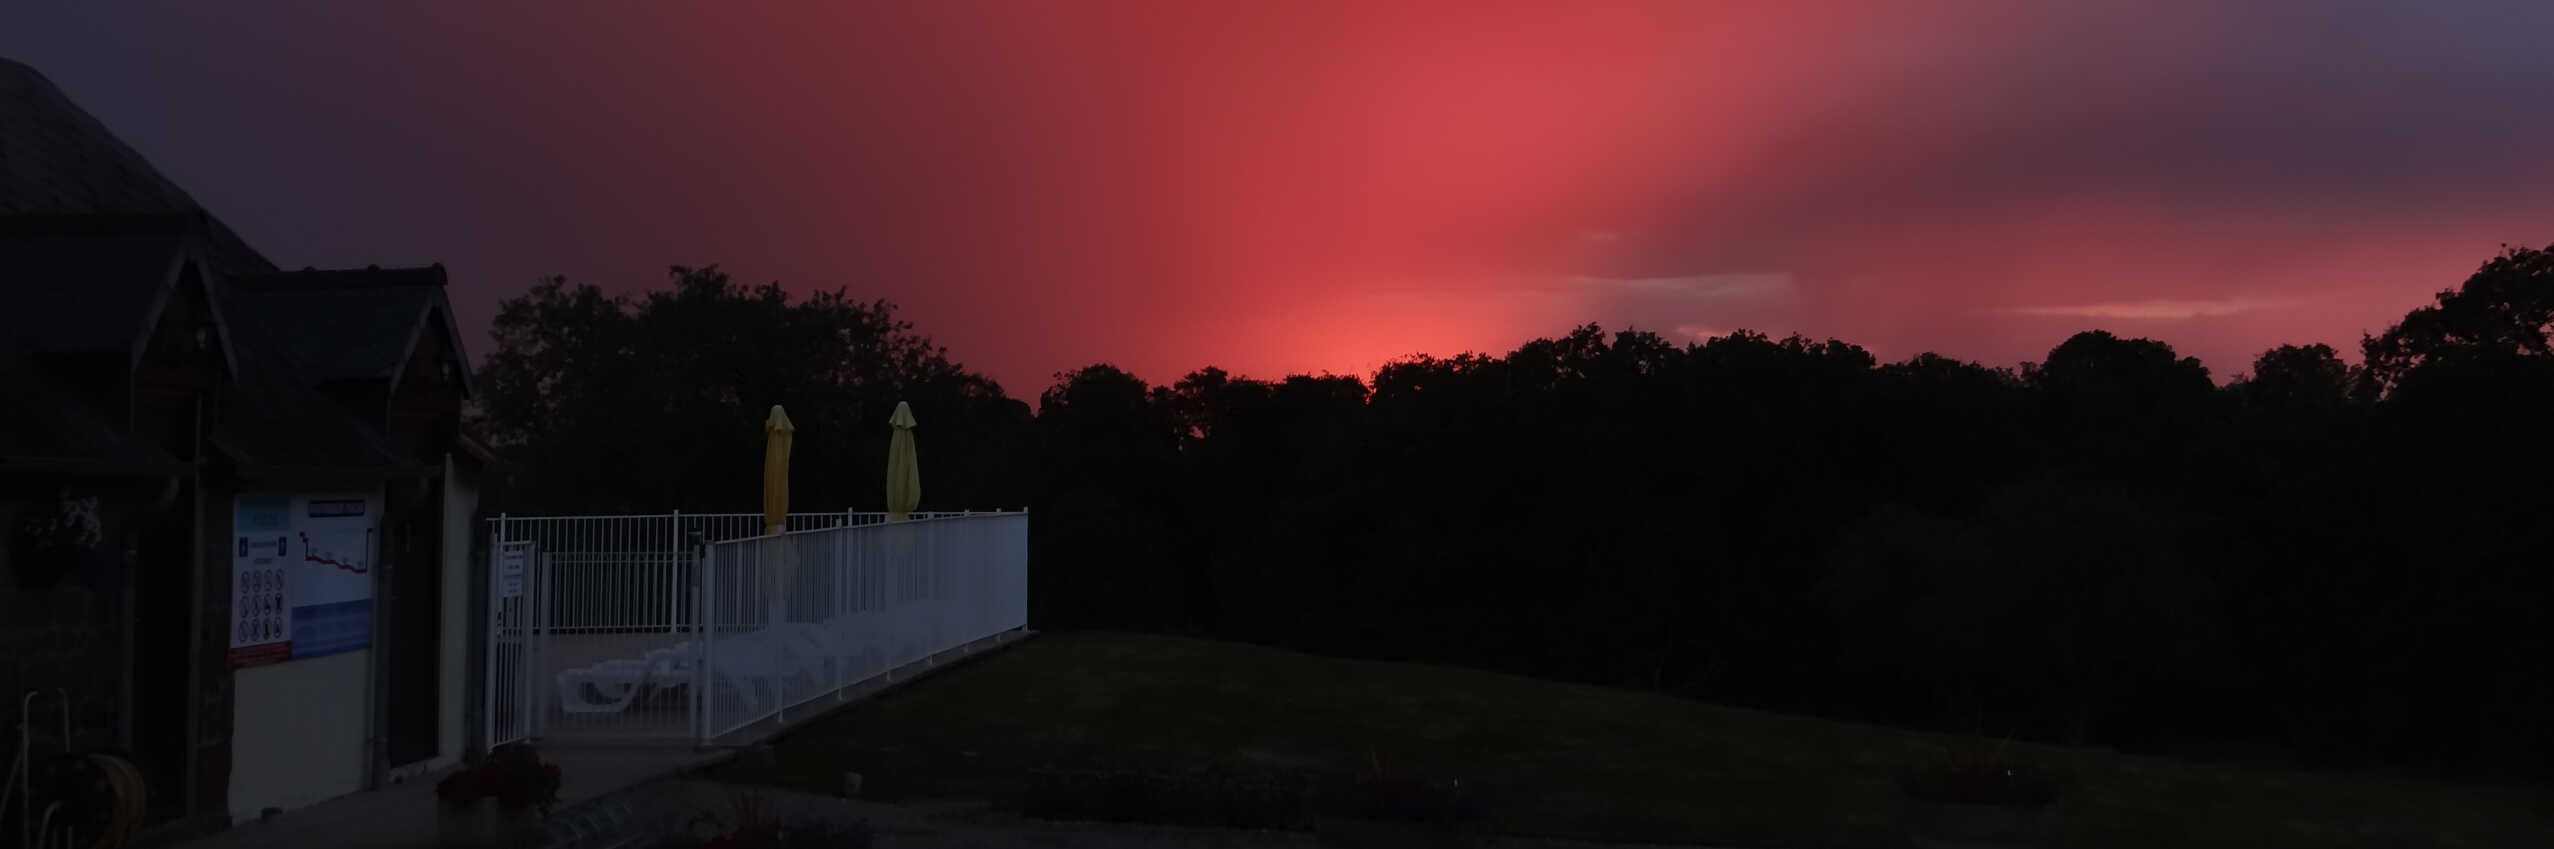 Photo of a bright red sunset creating a silhouette of trees, to the left is Parc Mayenne's swimming pool.